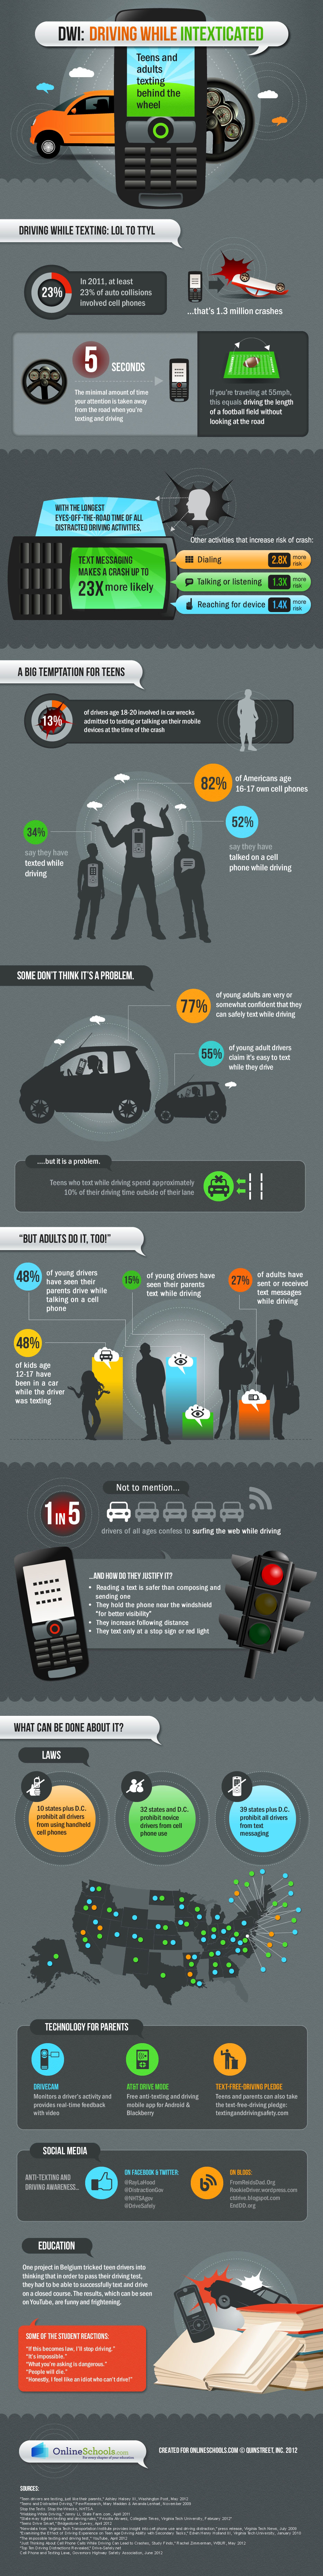 Texting While Driving: It's Worse Than You Think [Infographic]